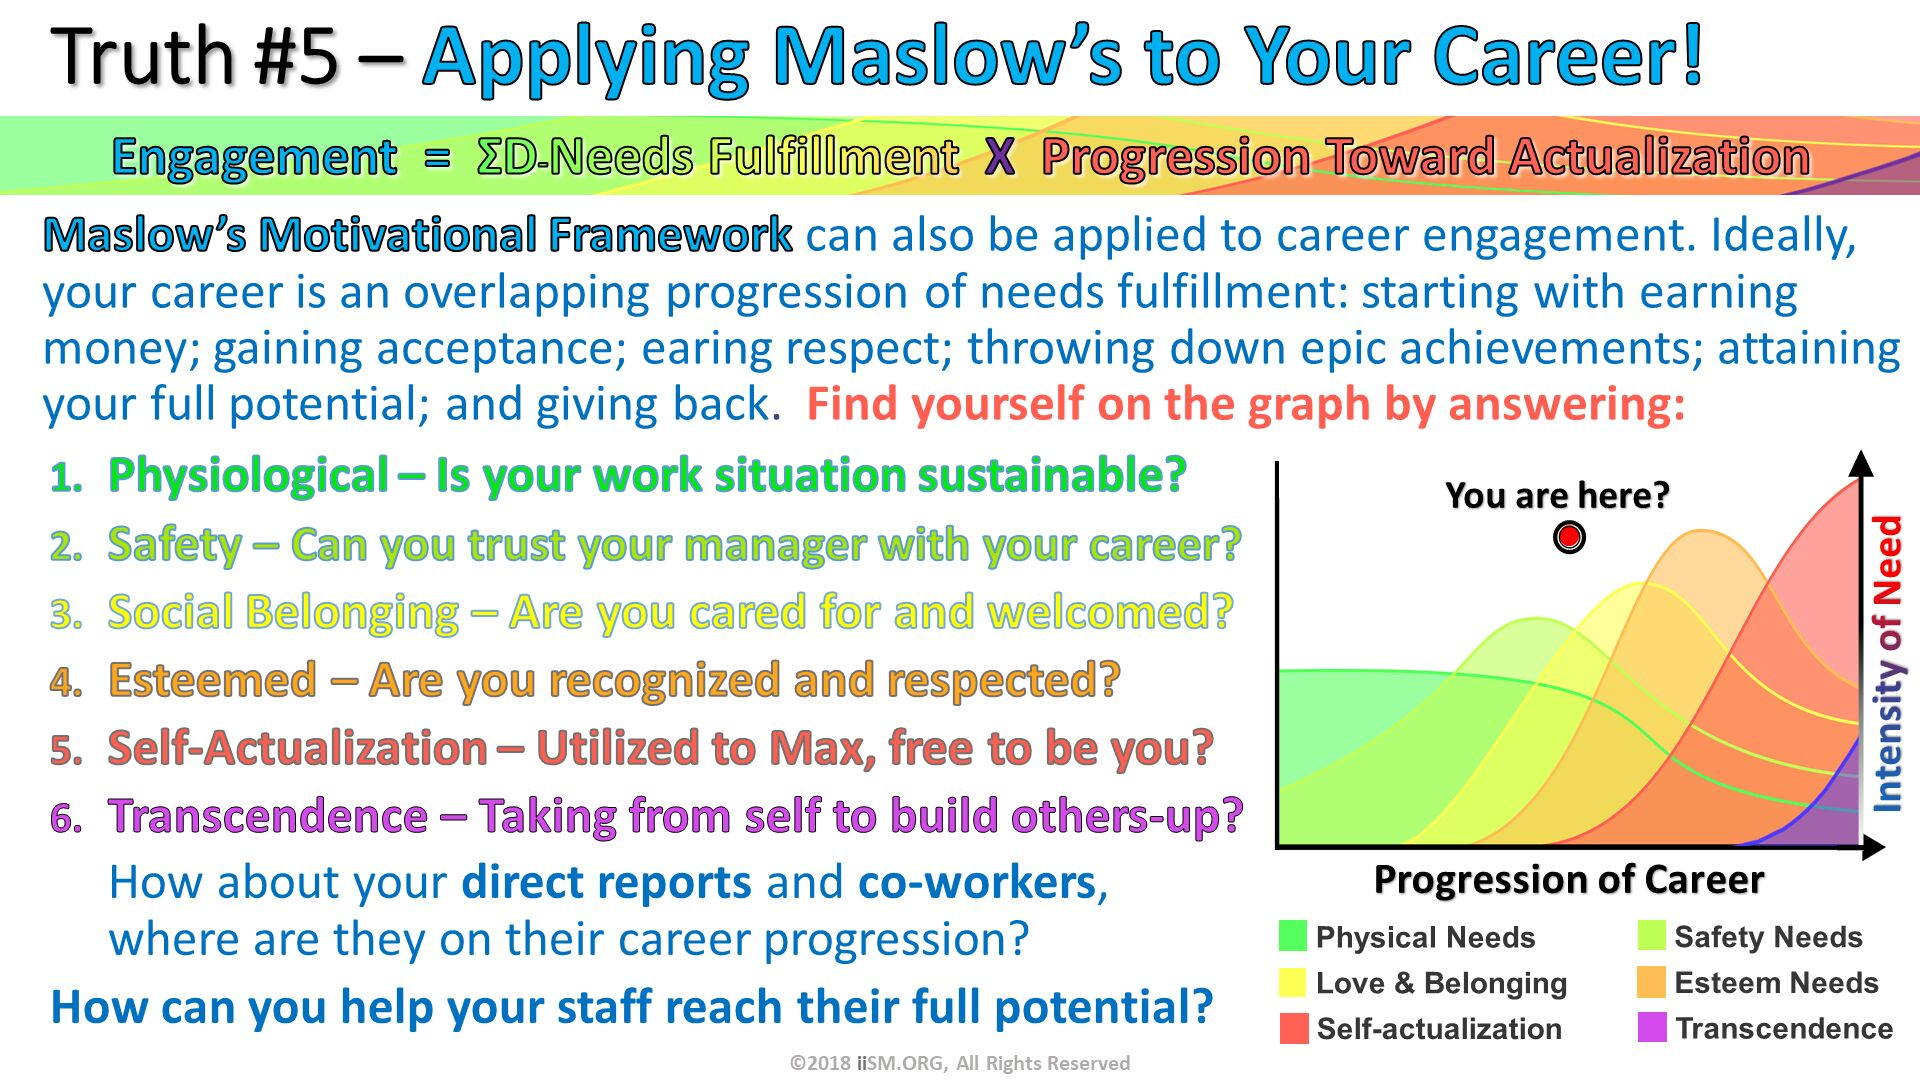 Maslow's Motivational Framework can also be applied to career engagement. Ideally, your career is an overlapping progression of needs fulfillment: starting with earning money; gaining acceptance; earing respect; throwing down epic achievements; attaining your full potential; and giving back.  Find yourself on the graph by answering:  . Truth #5 – Applying Maslow's to Your Career! . Physiological – Is your work situation sustainable? Safety – Can you trust your manager with your career? Social Belonging – Are you cared for and welcomed? Esteemed – Are you recognized and respected? Self-Actualization – Utilized to Max, free to be you? Transcendence – Taking from self to build others-up? How about your direct reports and co-workers, where are they on their career progression?  How can you help your staff reach their full potential? . ©2018 iiSM.ORG, All Rights Reserved. Engagement  =  ΣD-Needs Fulfillment  X  Progression Toward Actualization.